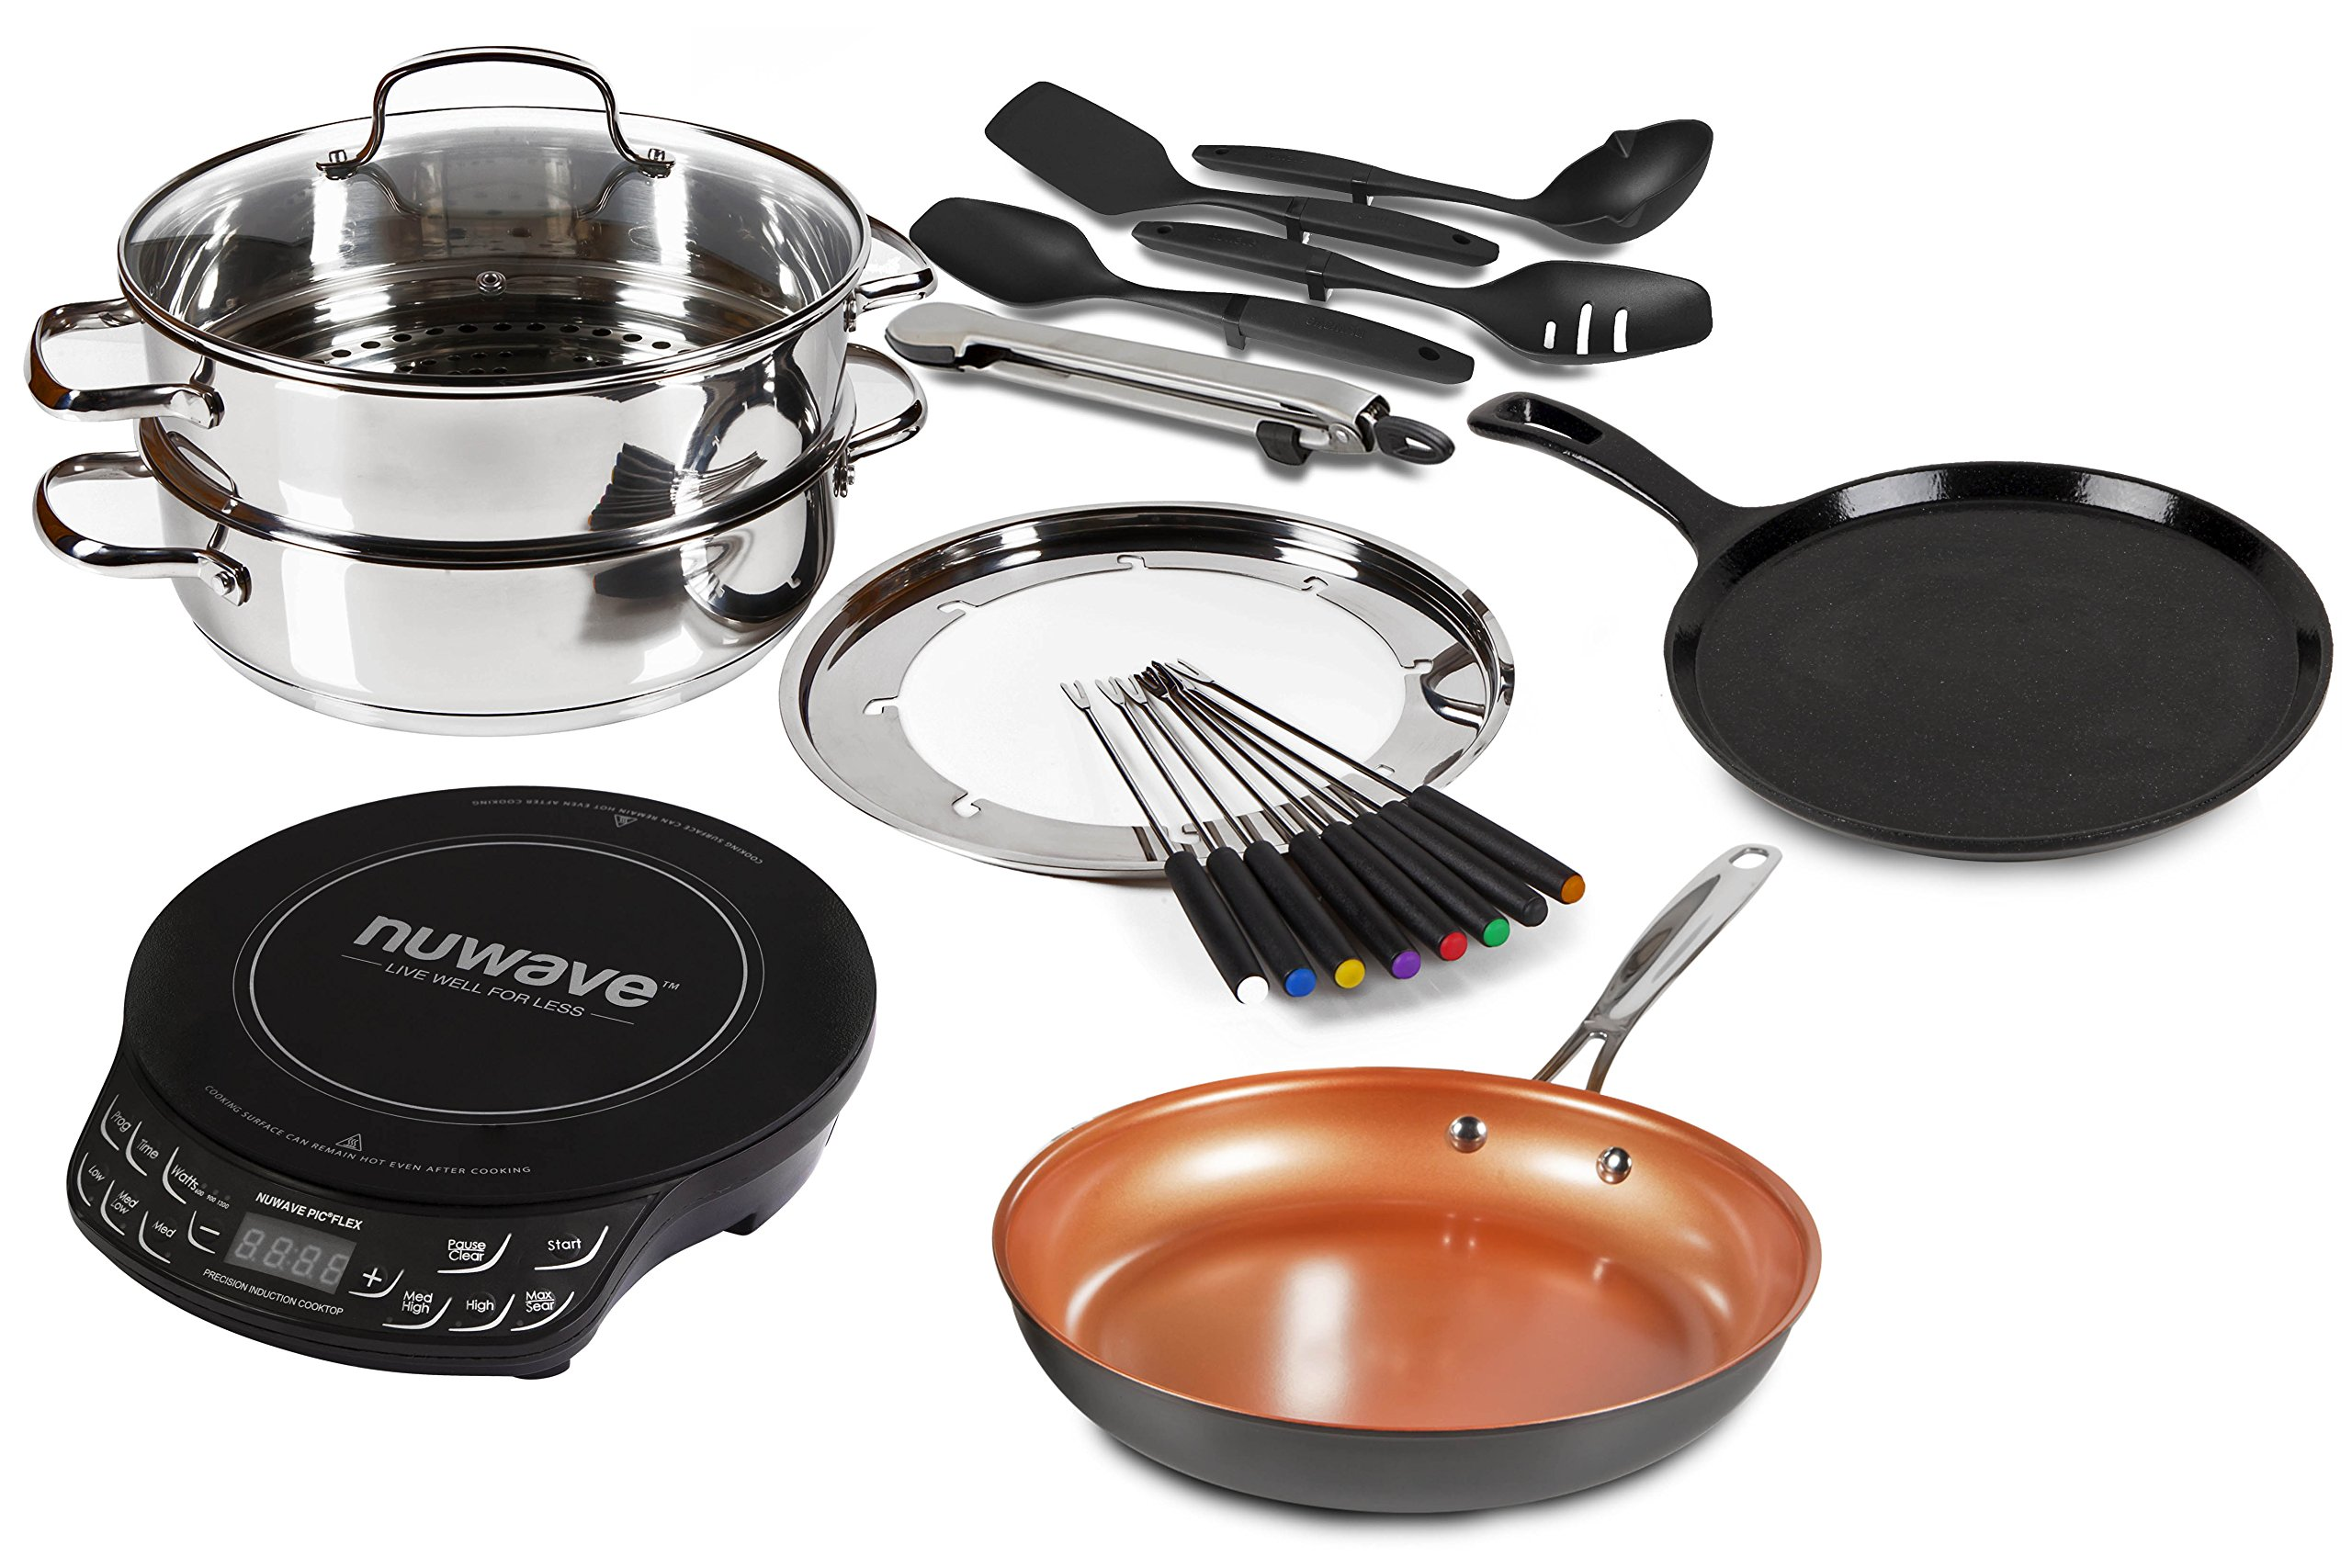 Nuwave Induction Cooktop Set